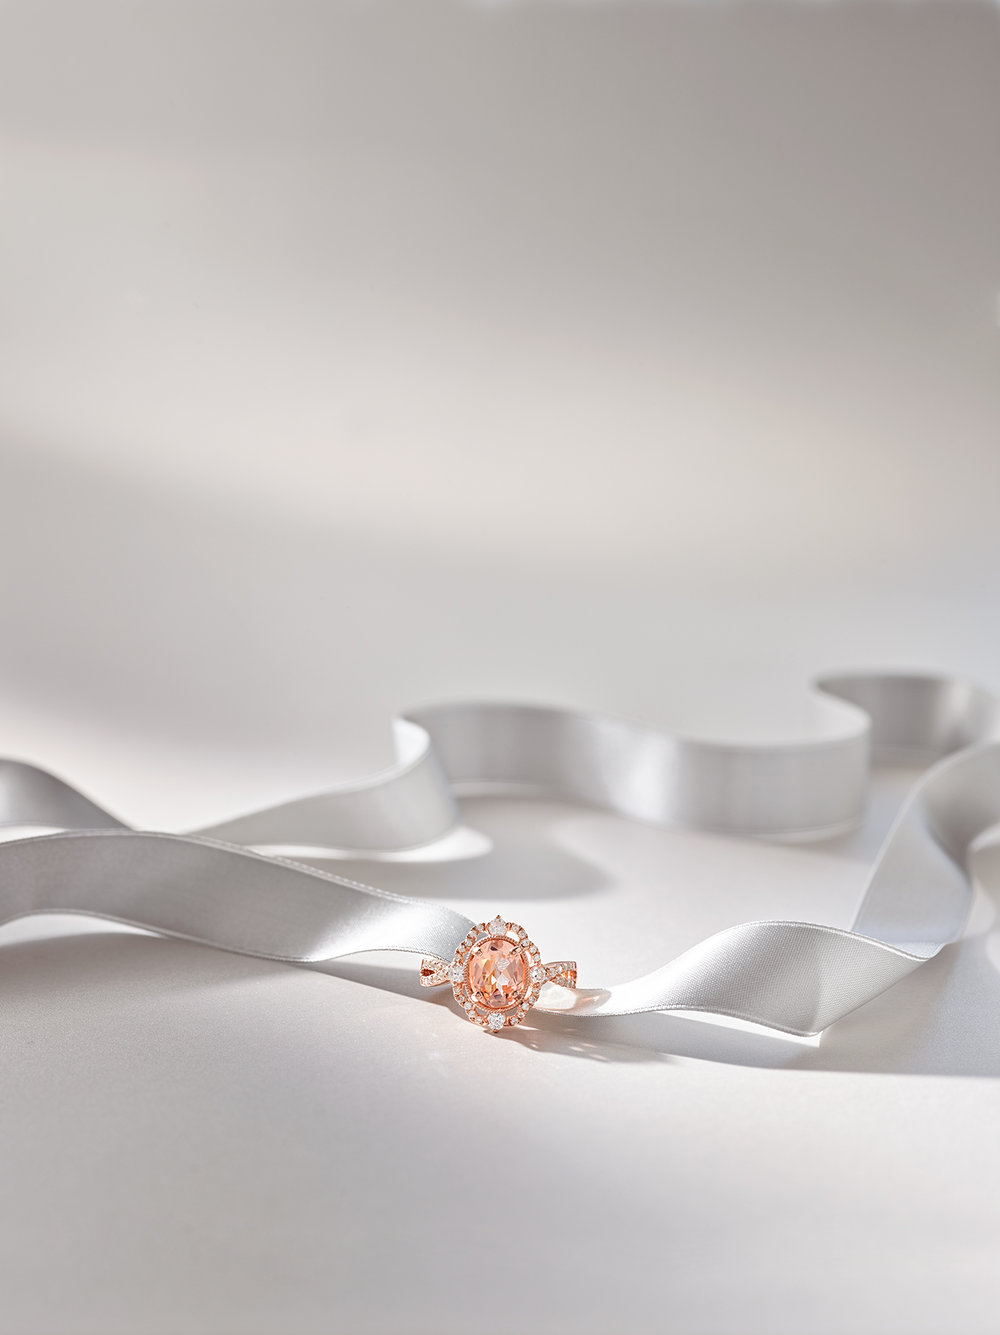 Product_photography_Jewelry_Derek_Israelsen_ZacPosen002_Diamond_.jpg